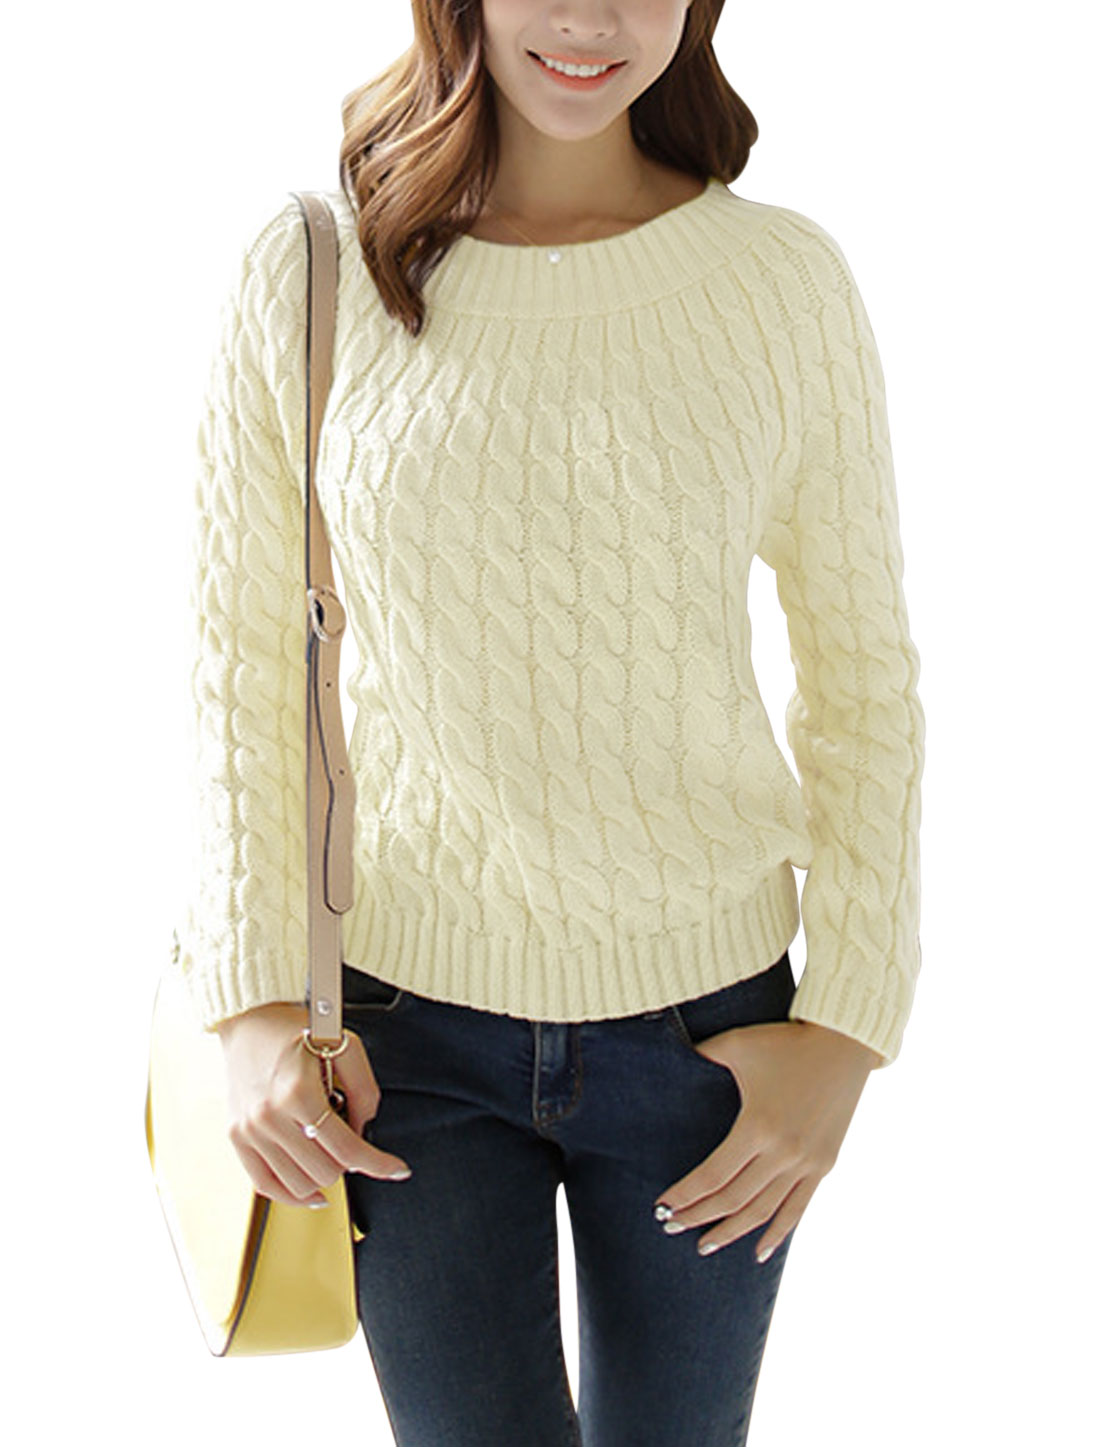 Ladies Round Neck Pullover Cable Rib Knit Design Casual Sweater Beige S